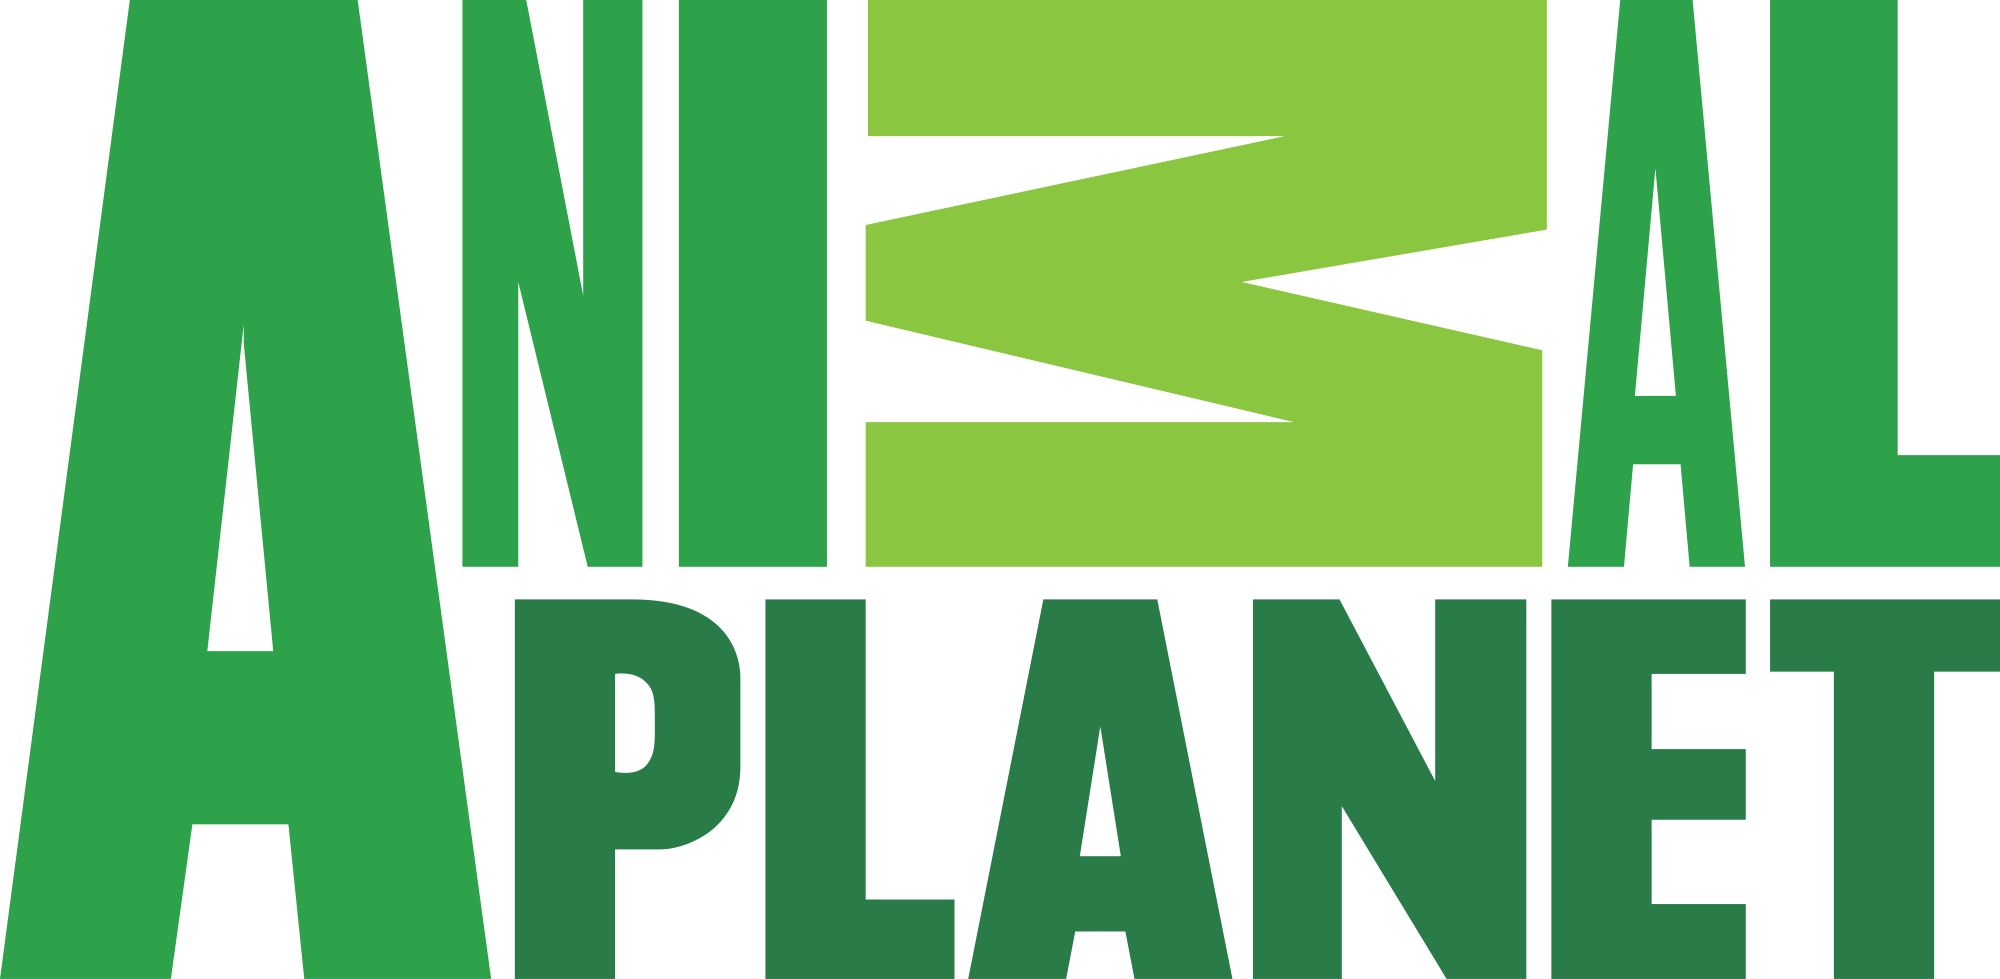 animal planet channel logo png